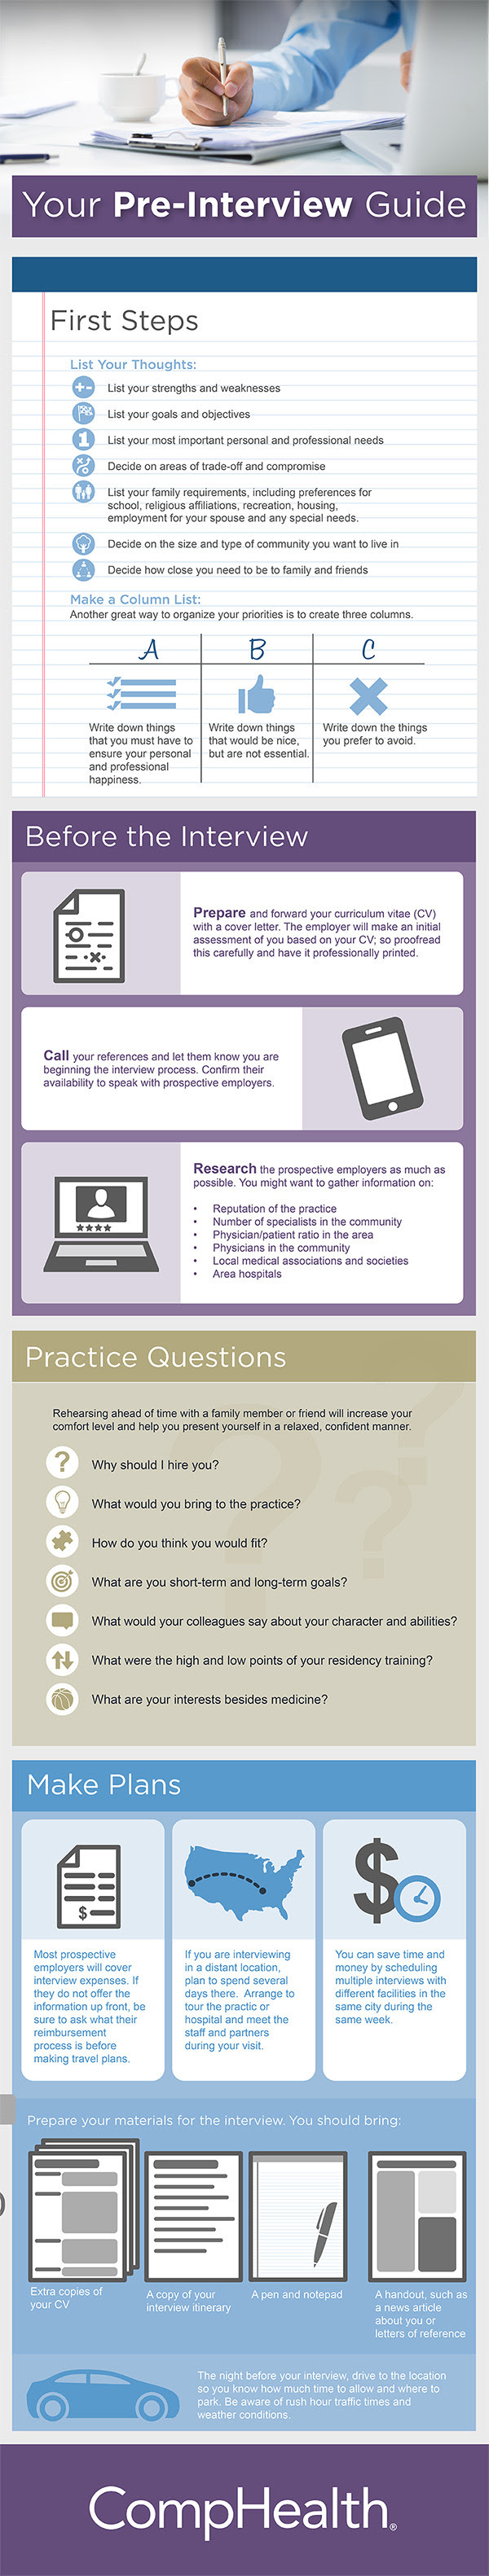 Infographic: Your Pre-Interview Guide #infographic